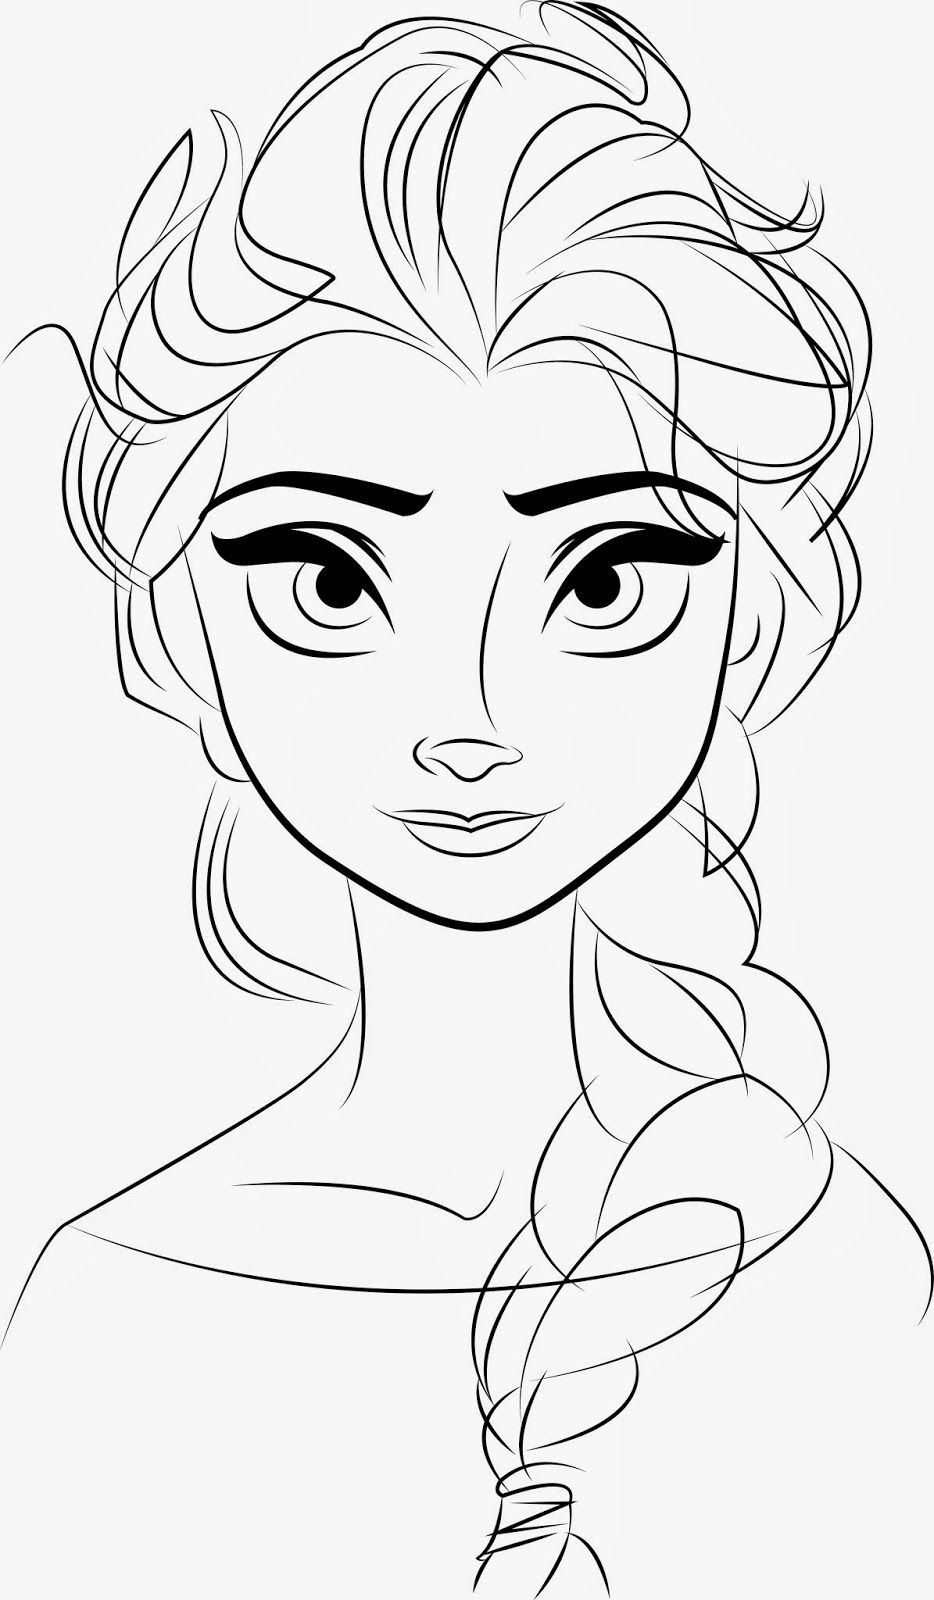 Bedroom drawing for kids - Disney Frozen Elsa Line Drawings Google Search